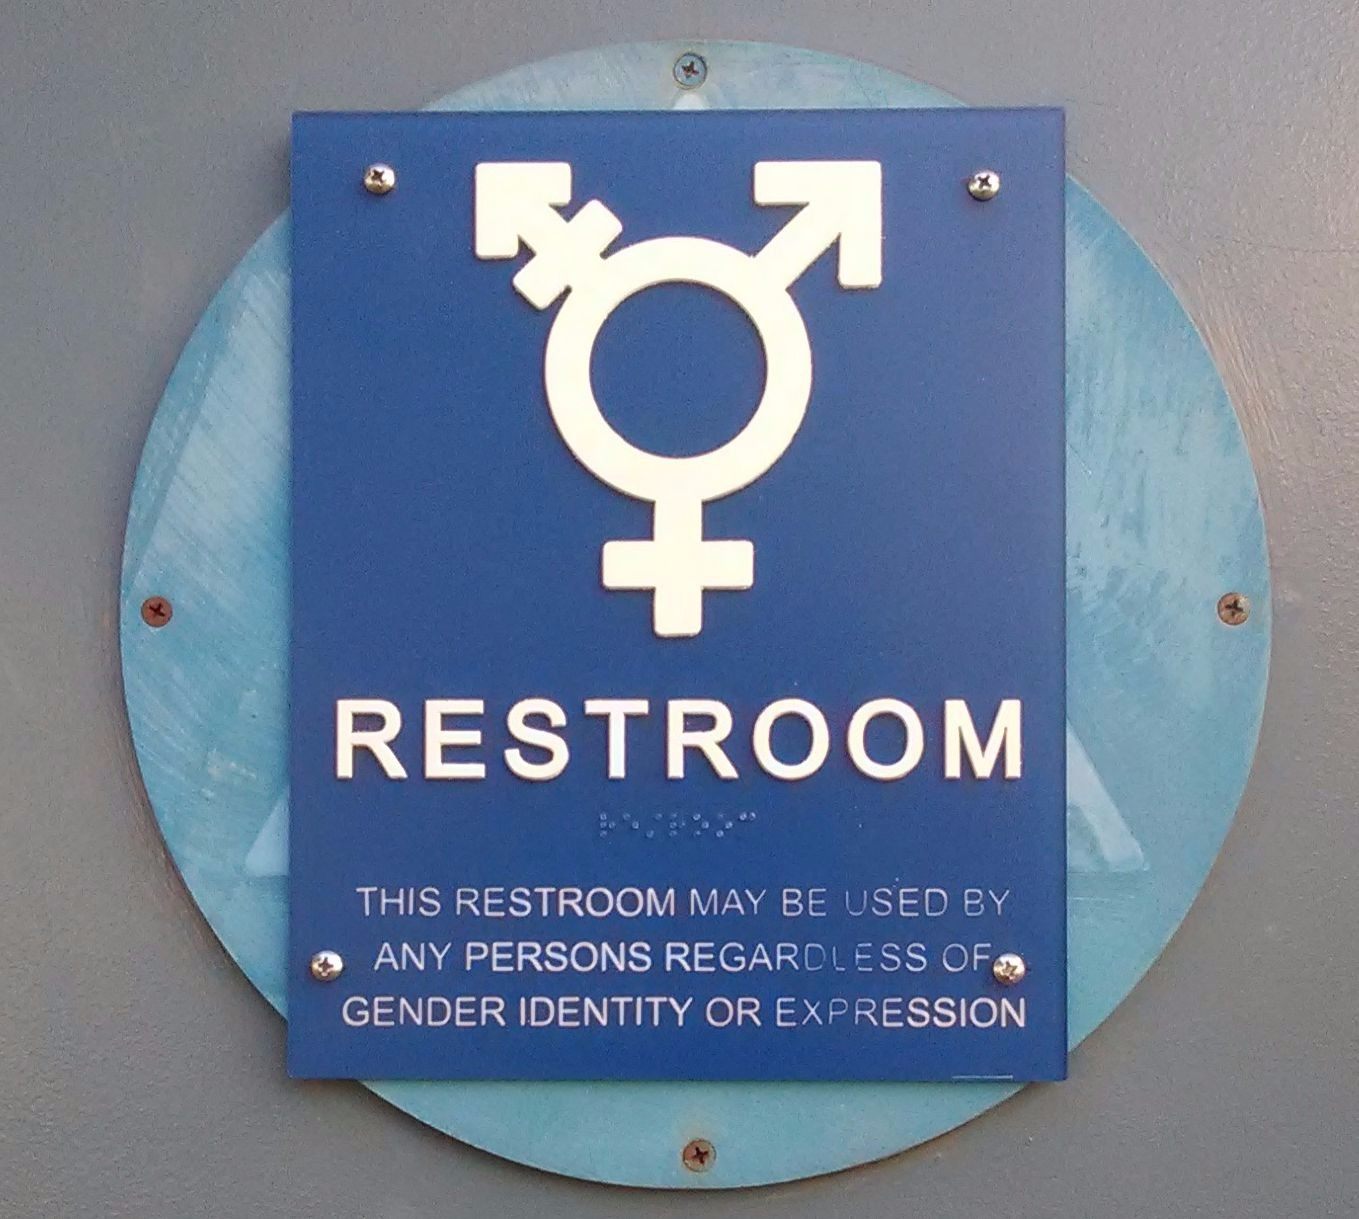 Gender-Neutral Bathrooms and Their Place in Schools - The ...